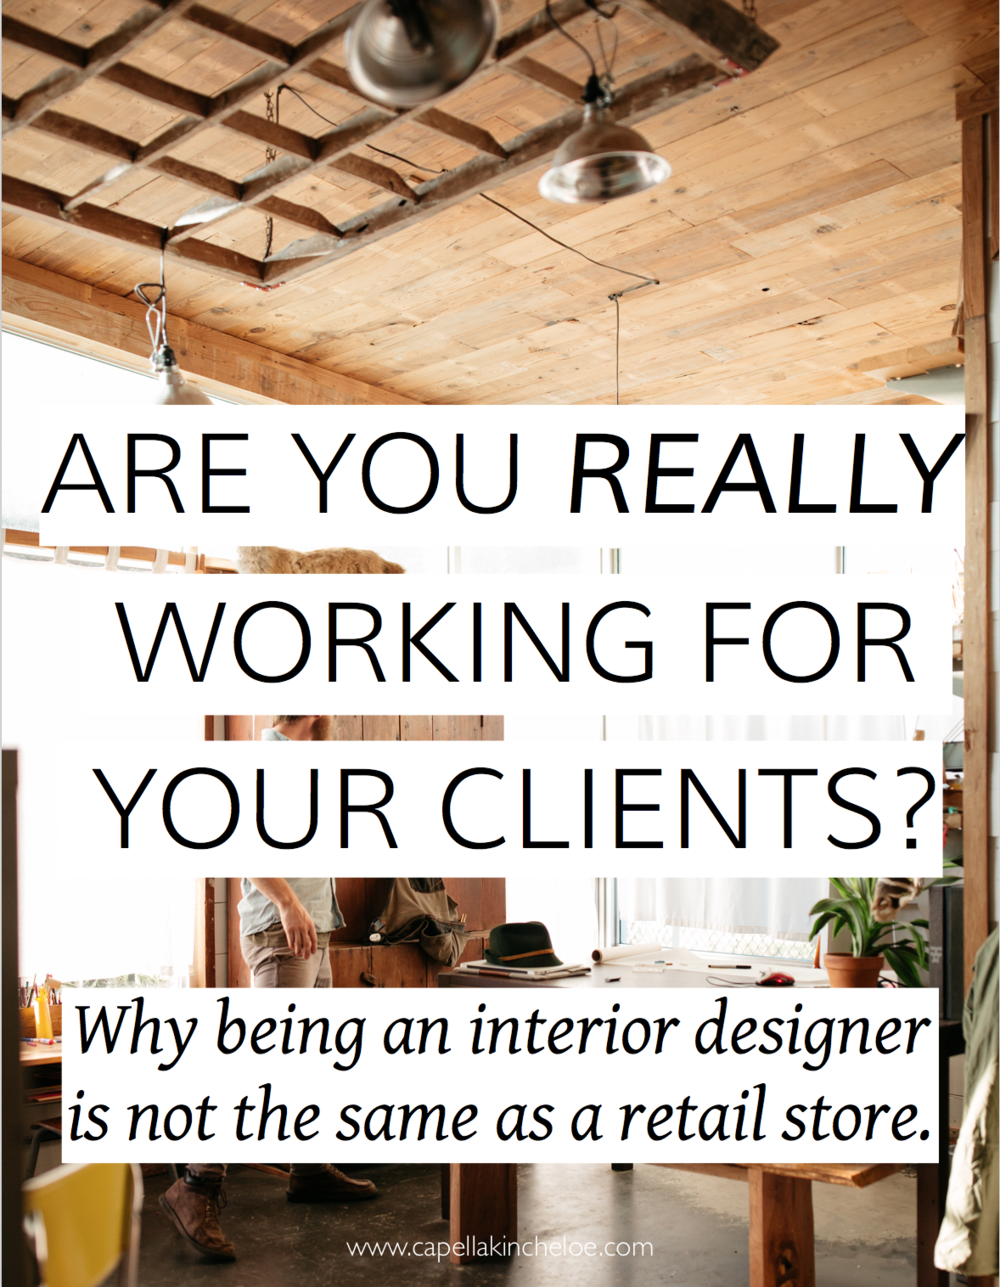 Often I hear the comparison of interior designers to retail stores, but there is a big difference in who they serve and why you should not do business like retail.  Learn more about this way of running an interior design business.